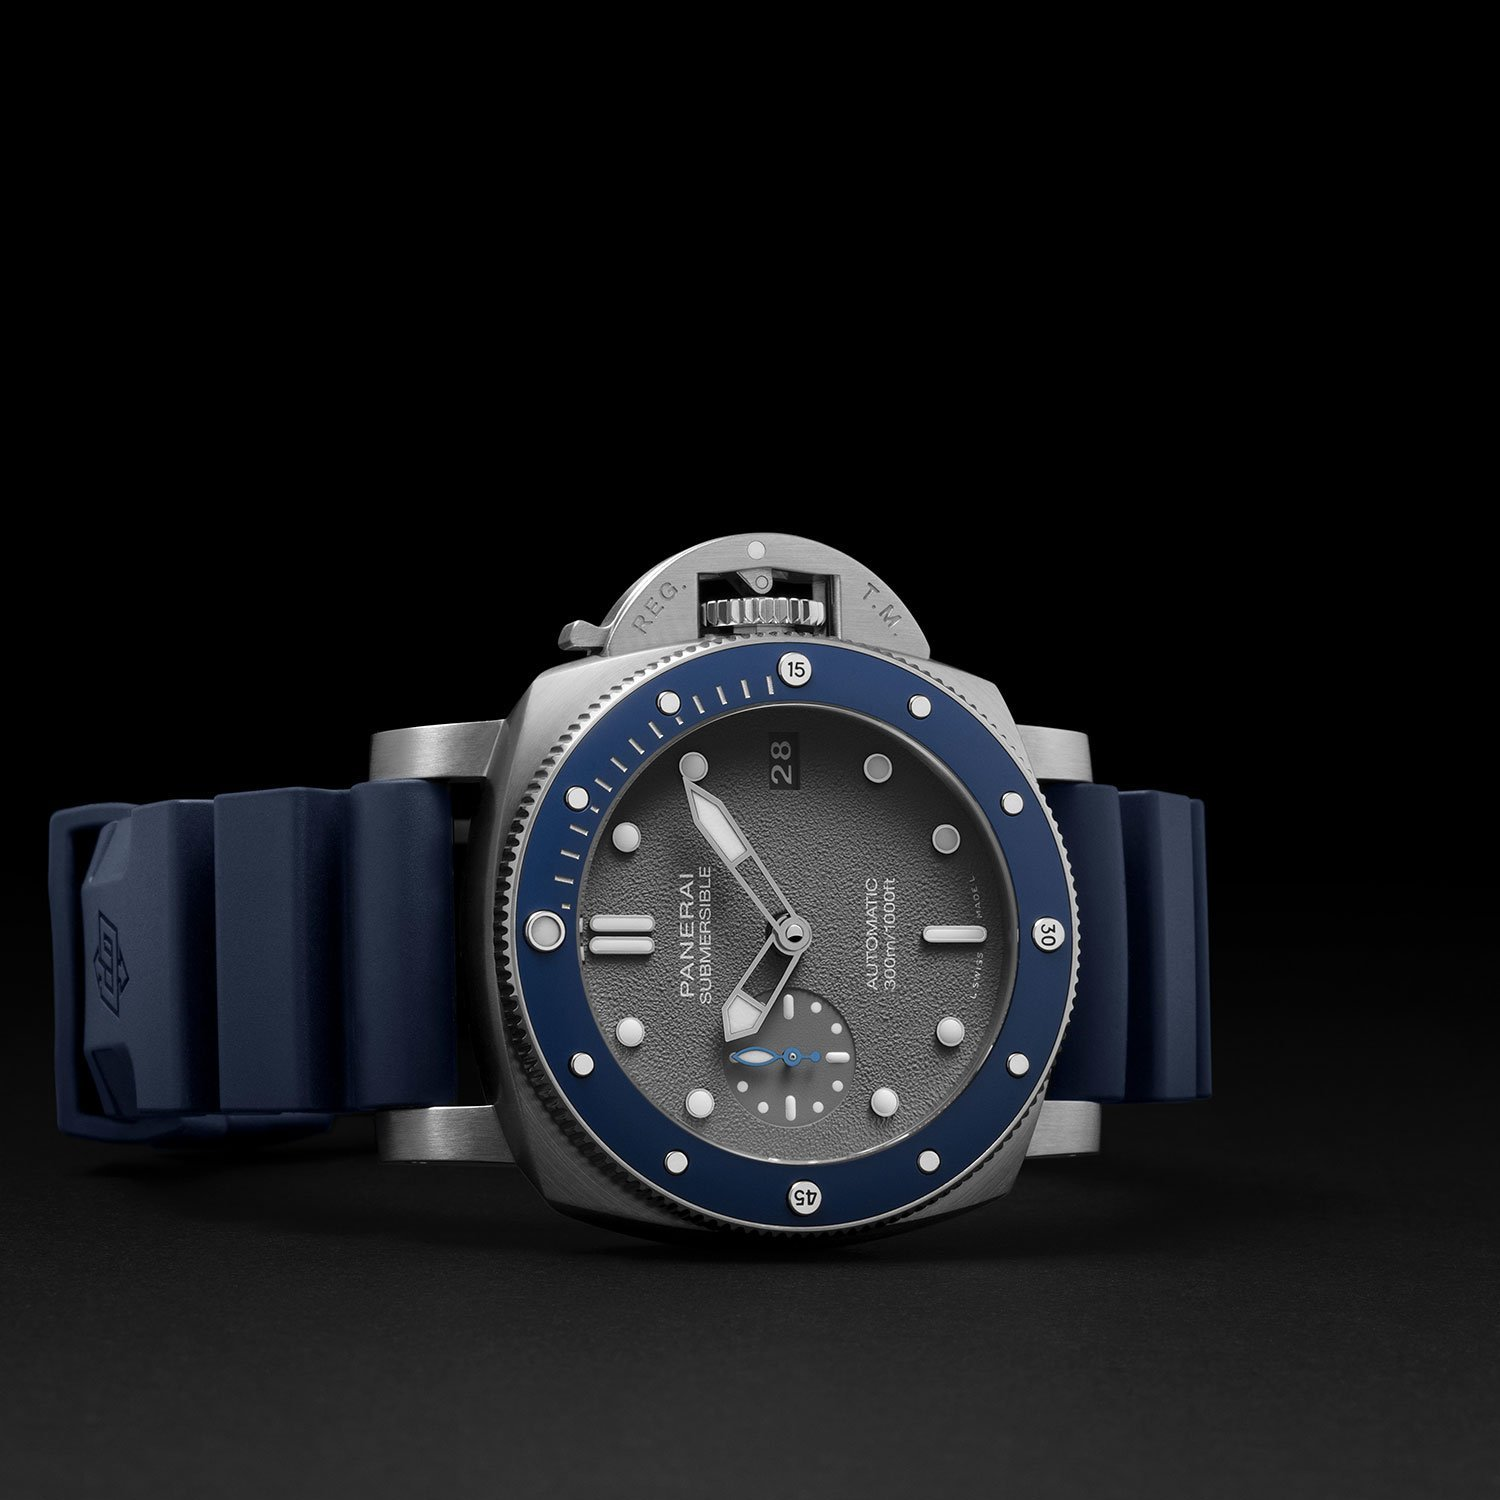 Montre Panerai Submersible – 42mm vue 3